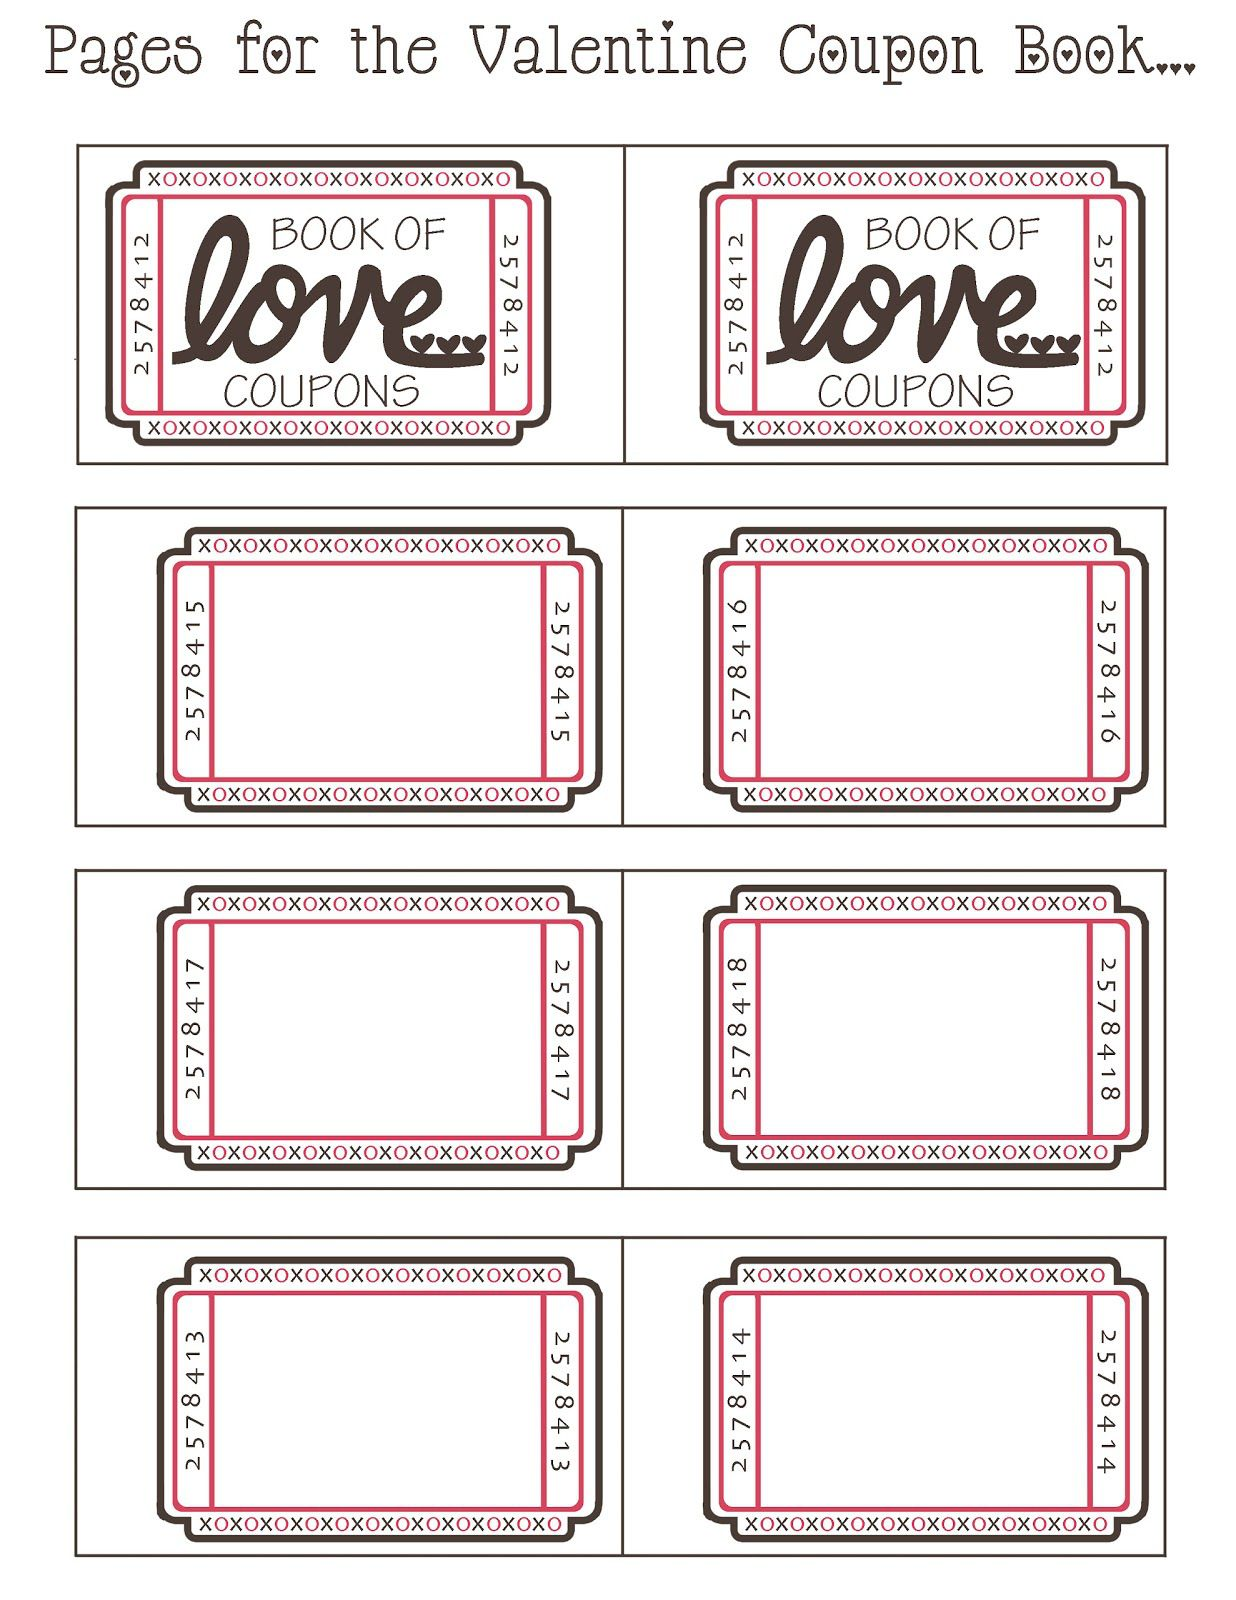 Coupon book ideas for husband blank love coupon templates for Sex coupon template